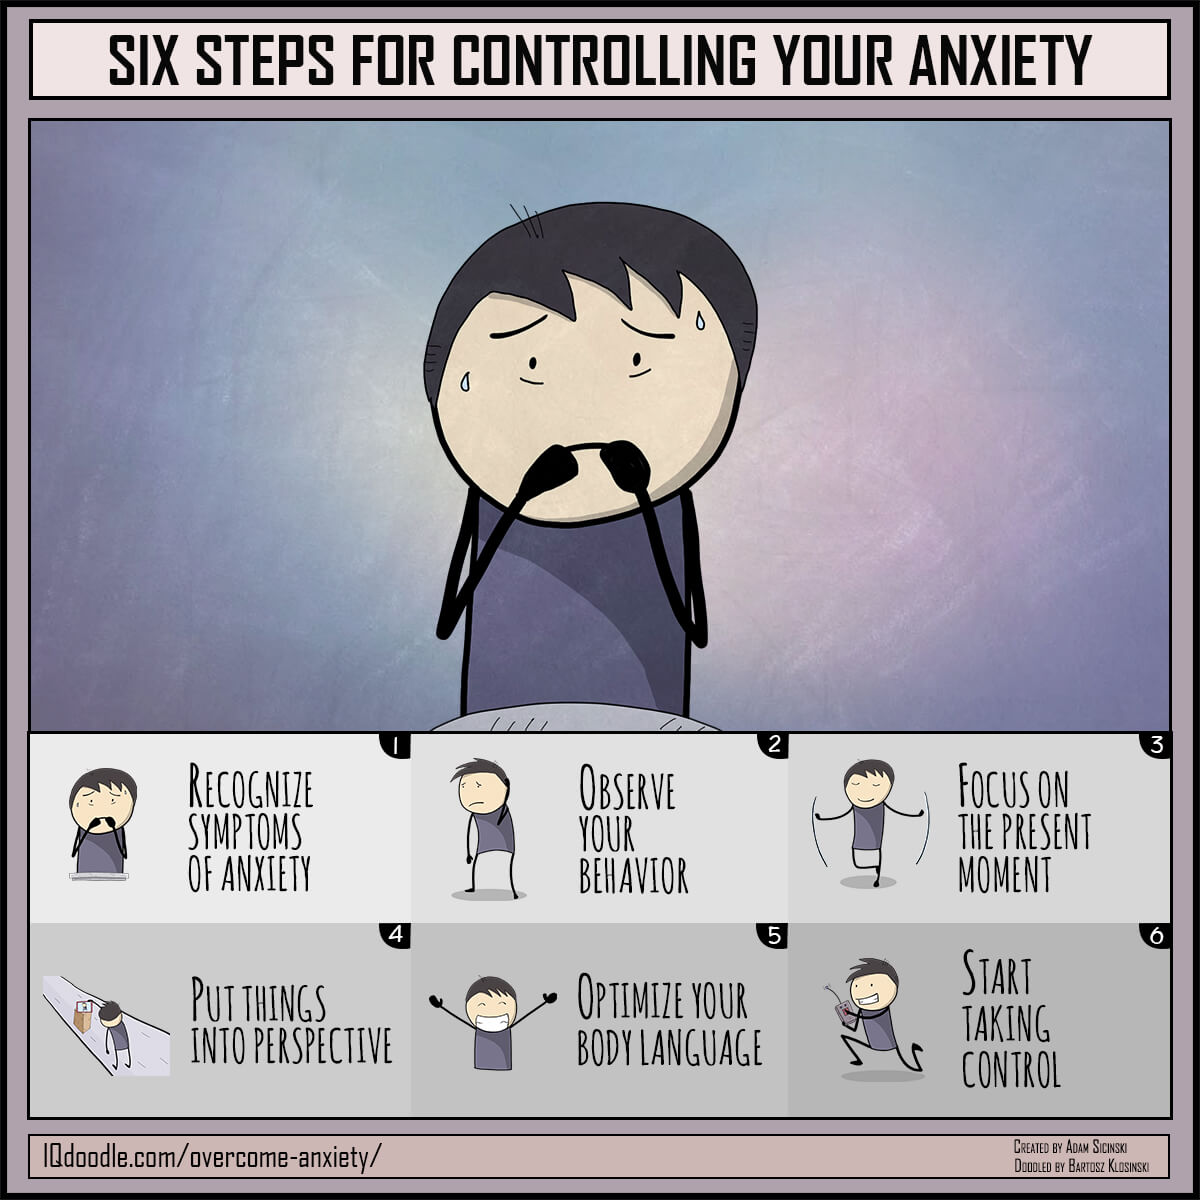 Six Steps for Controlling Your Anxiety